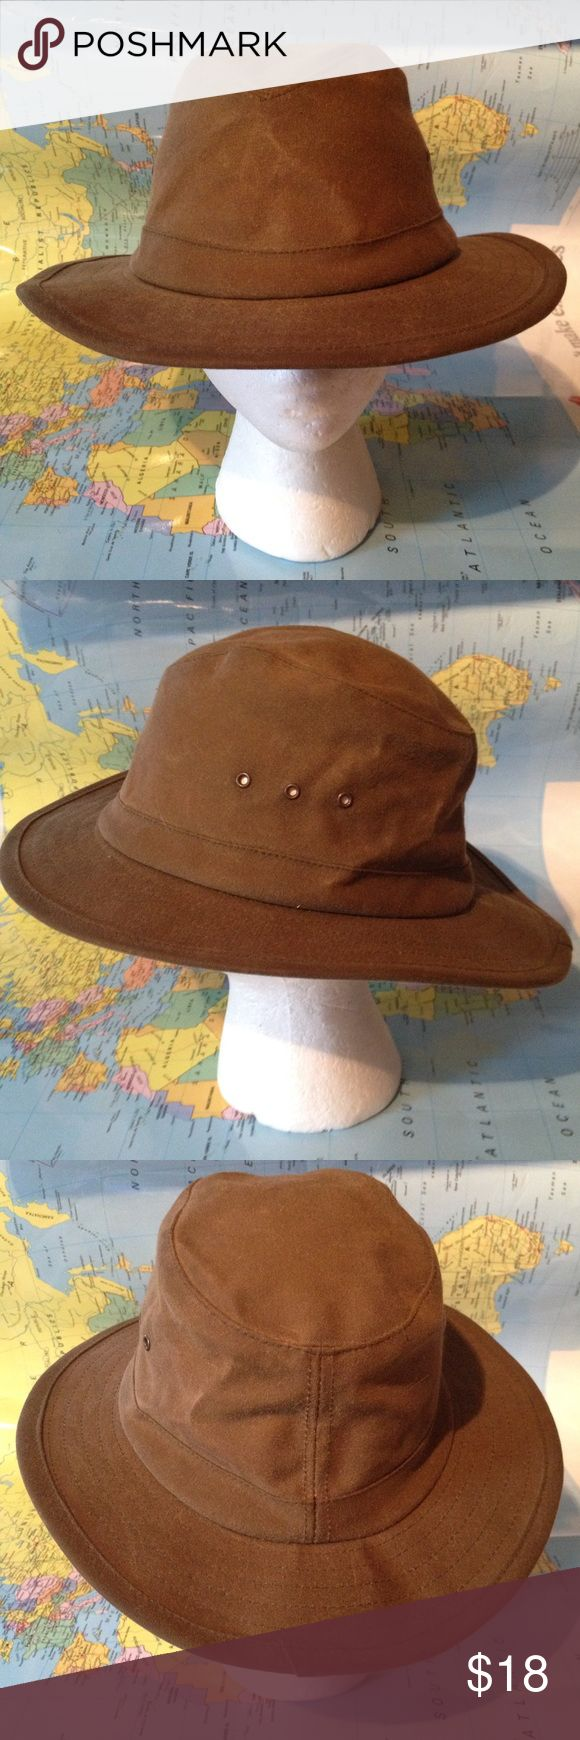 Orvis brown cotton hat adventure safari Used hat with no holes, rips or tears from smoke free environment, thank you.  SKU 113016.001.00Y Orvis Accessories Hats